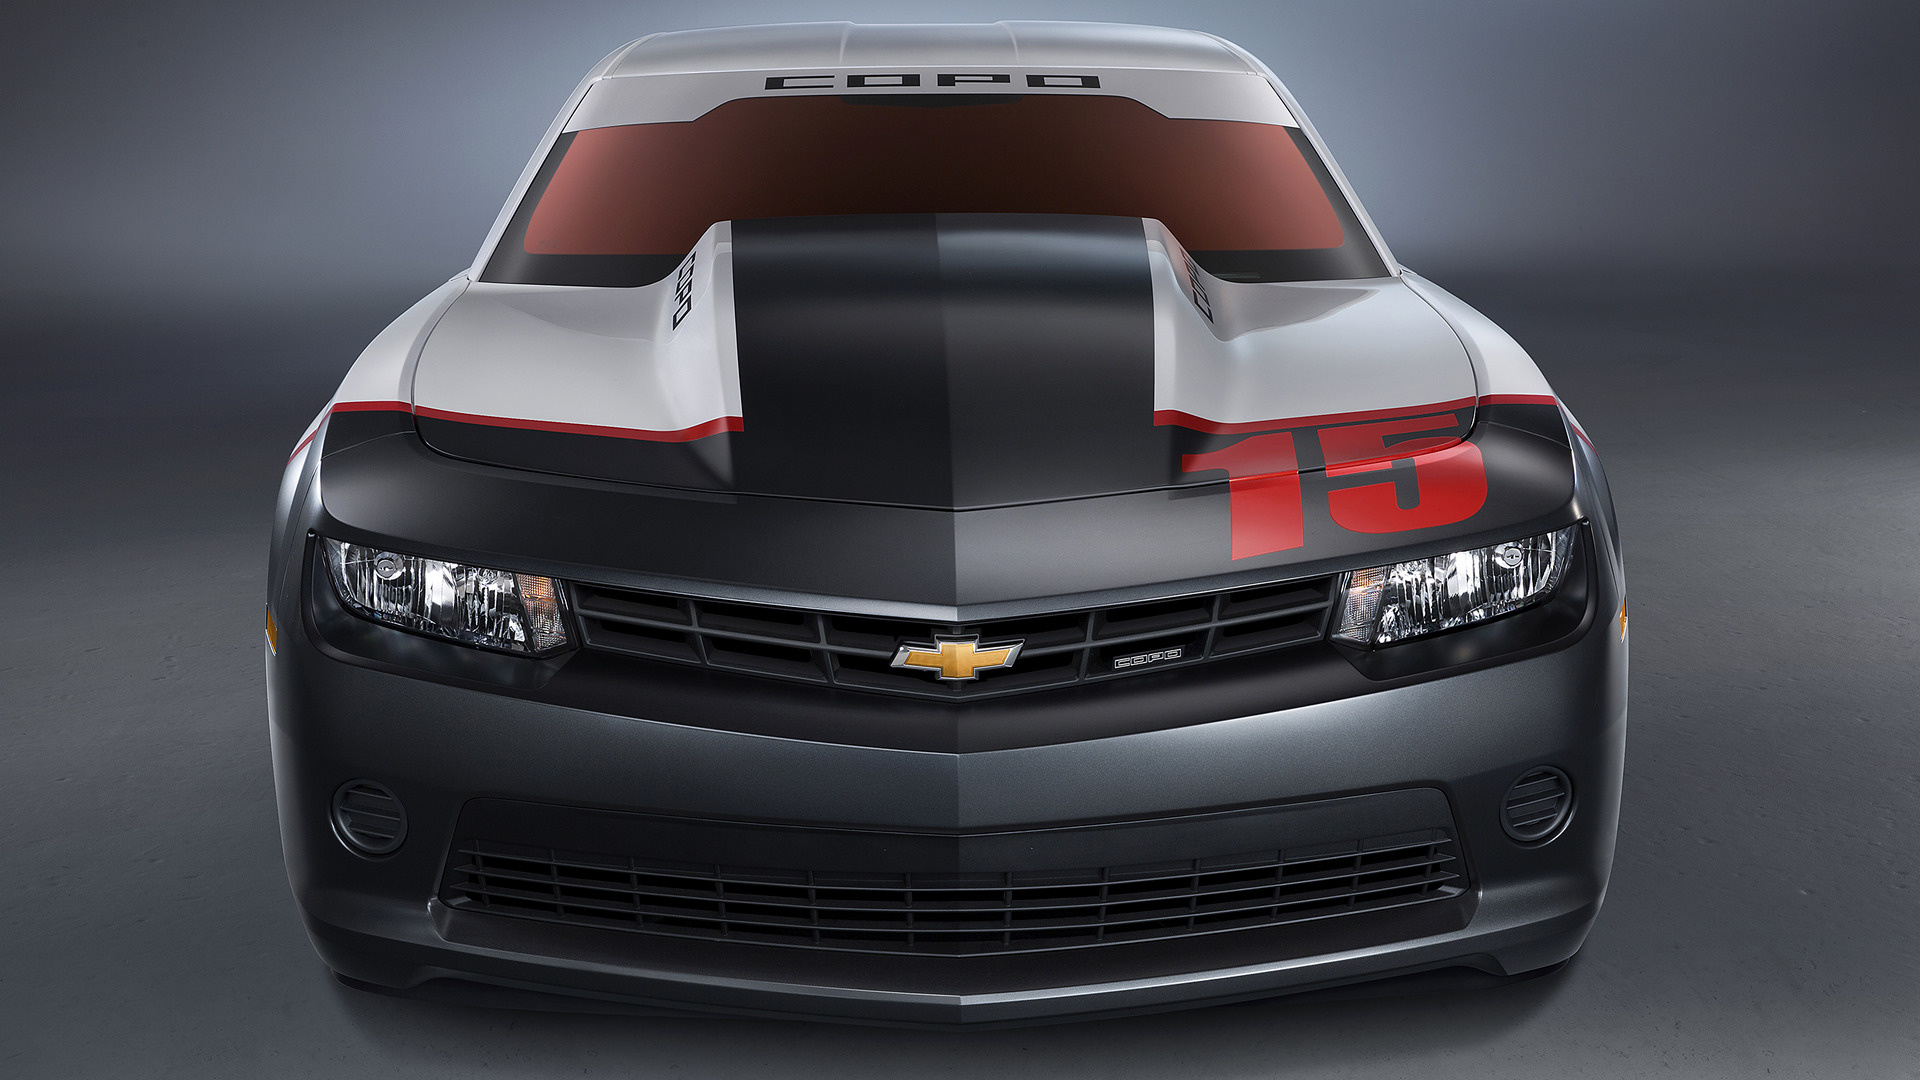 2015 Chevrolet COPO Camaro - Wallpapers and HD Images ...